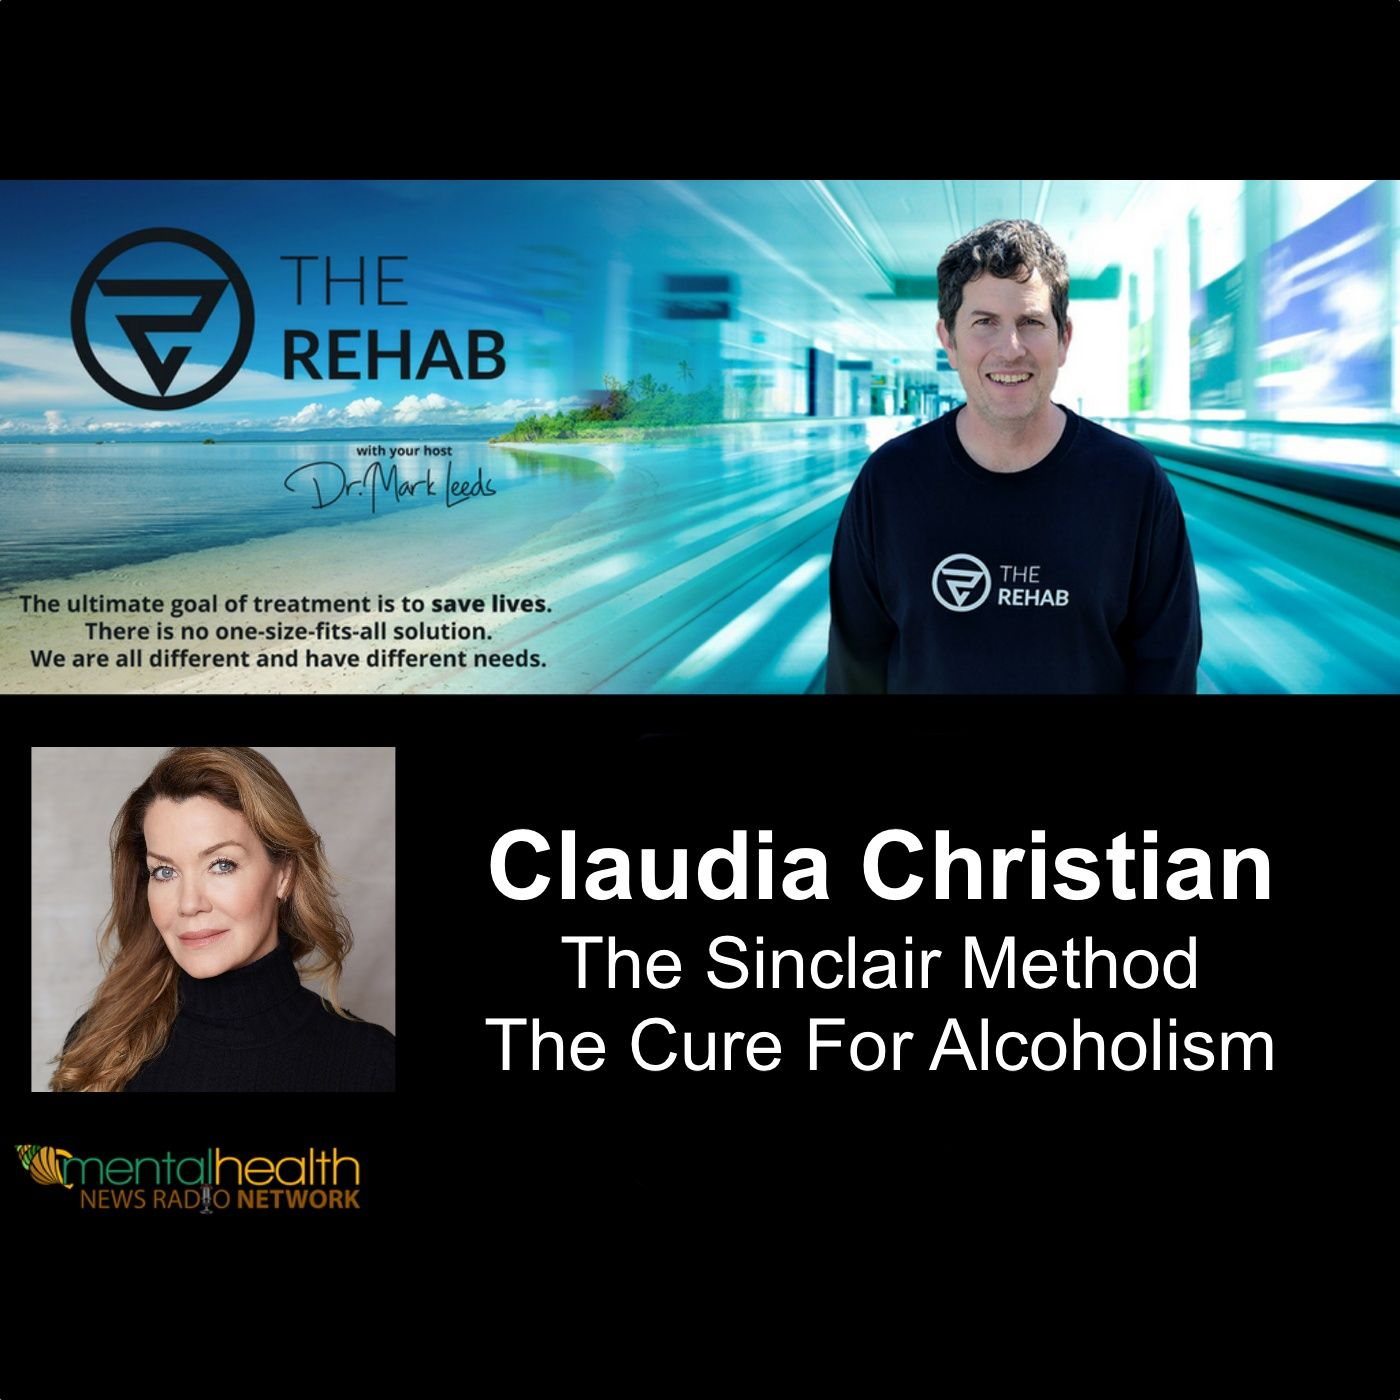 Claudia Christian On The Sinclair Method: Using Naltrexone To Cure Alcoholism